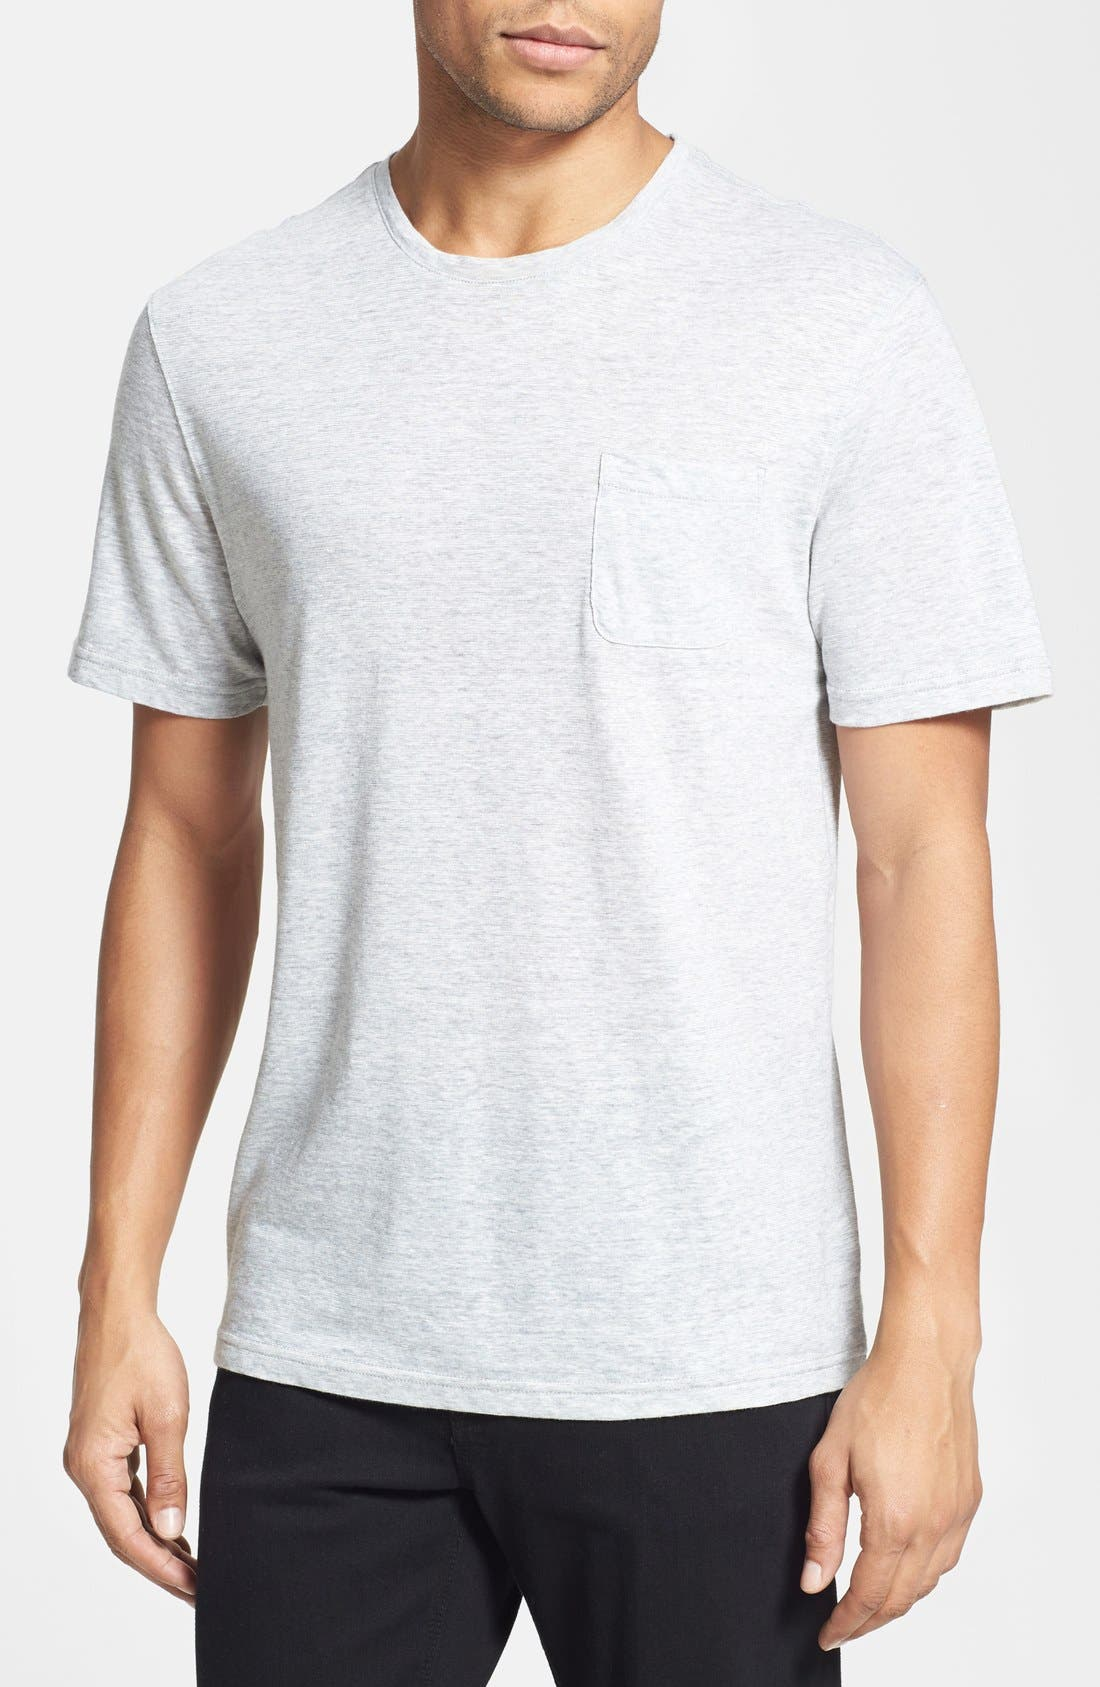 Alternate Image 1 Selected - Michael Kors Slub Crewneck T-Shirt